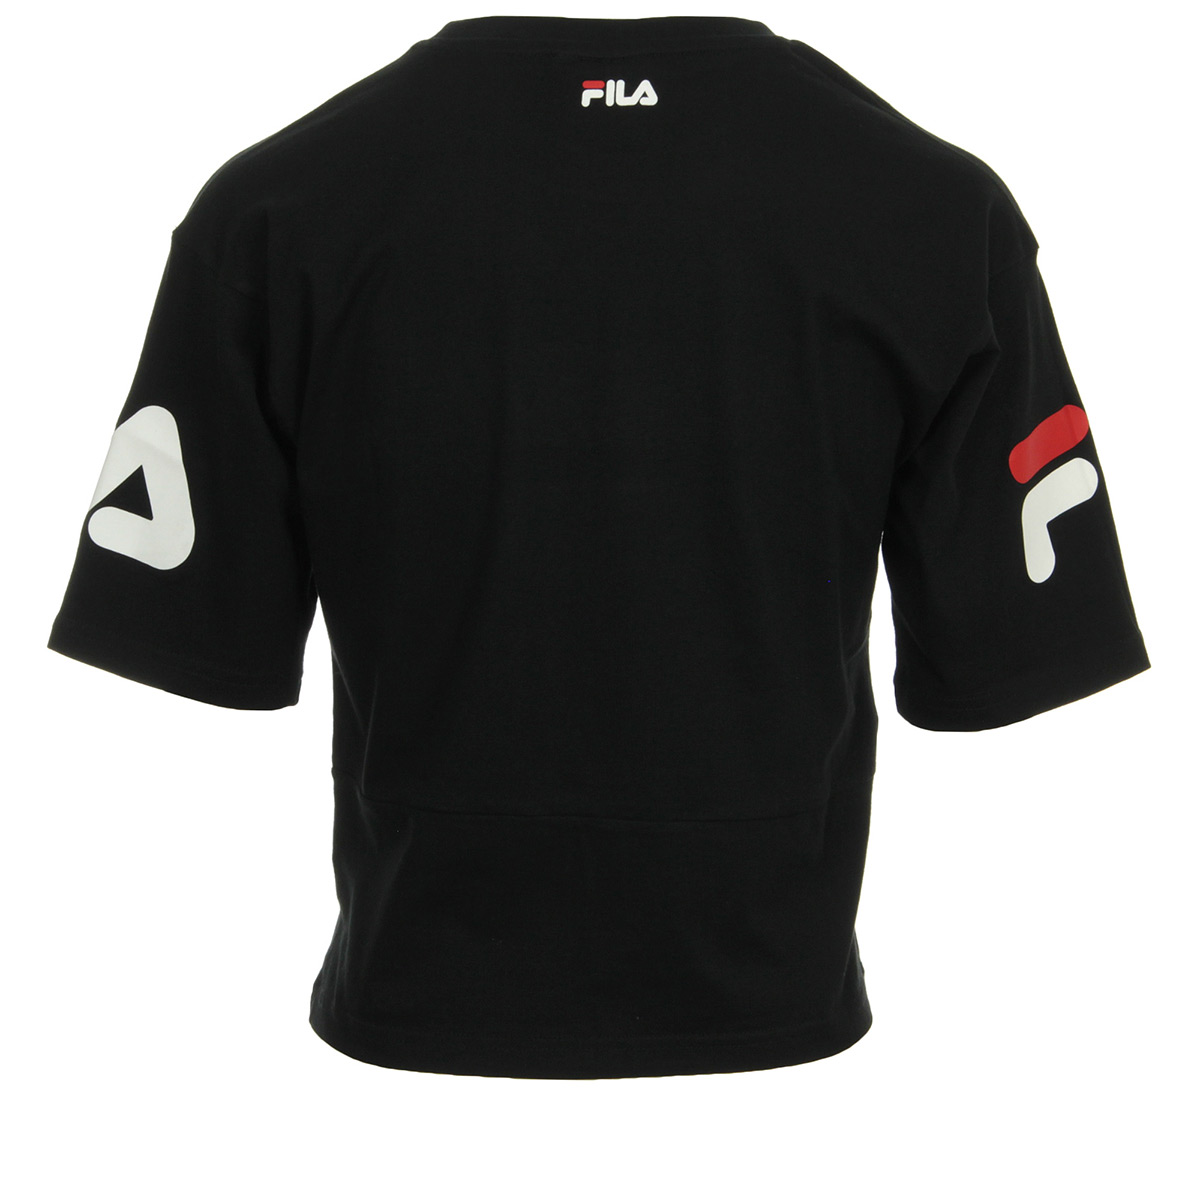 Fila Late Cropped Wns 682398002, T-Shirts femme